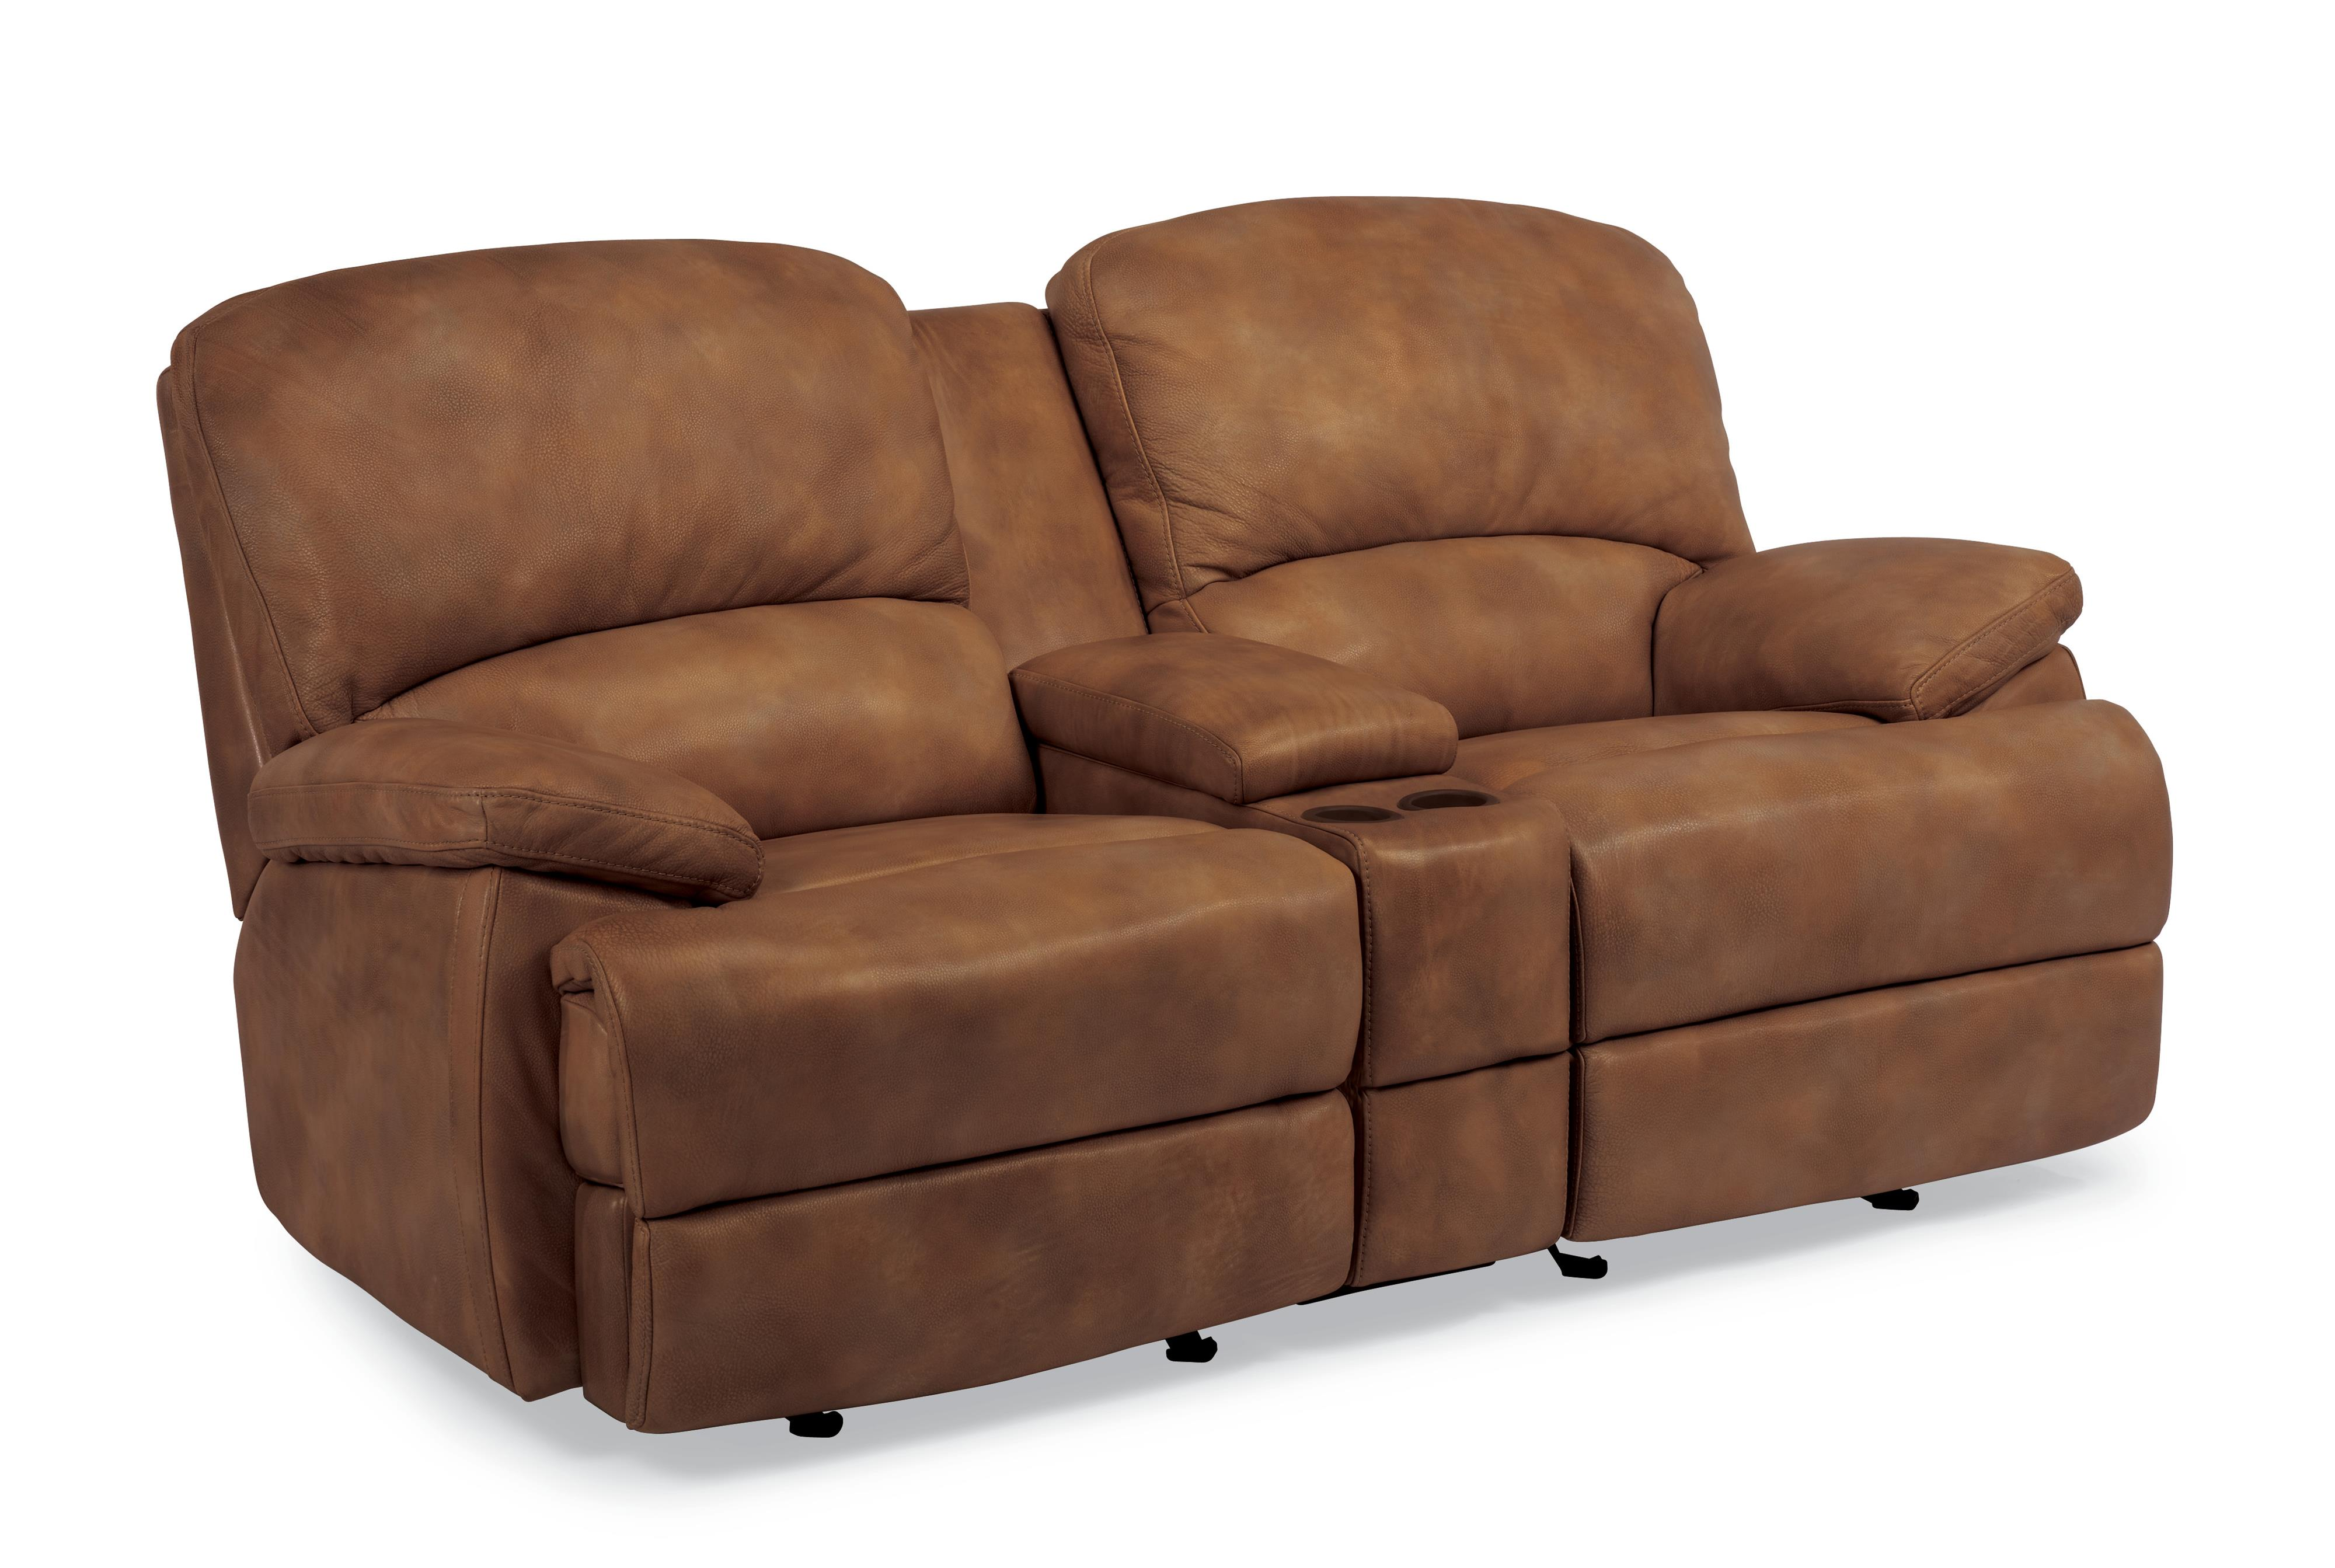 Flexsteel Latitudes - Dylan Motion Love Seat - Item Number: 1127-604-908-80